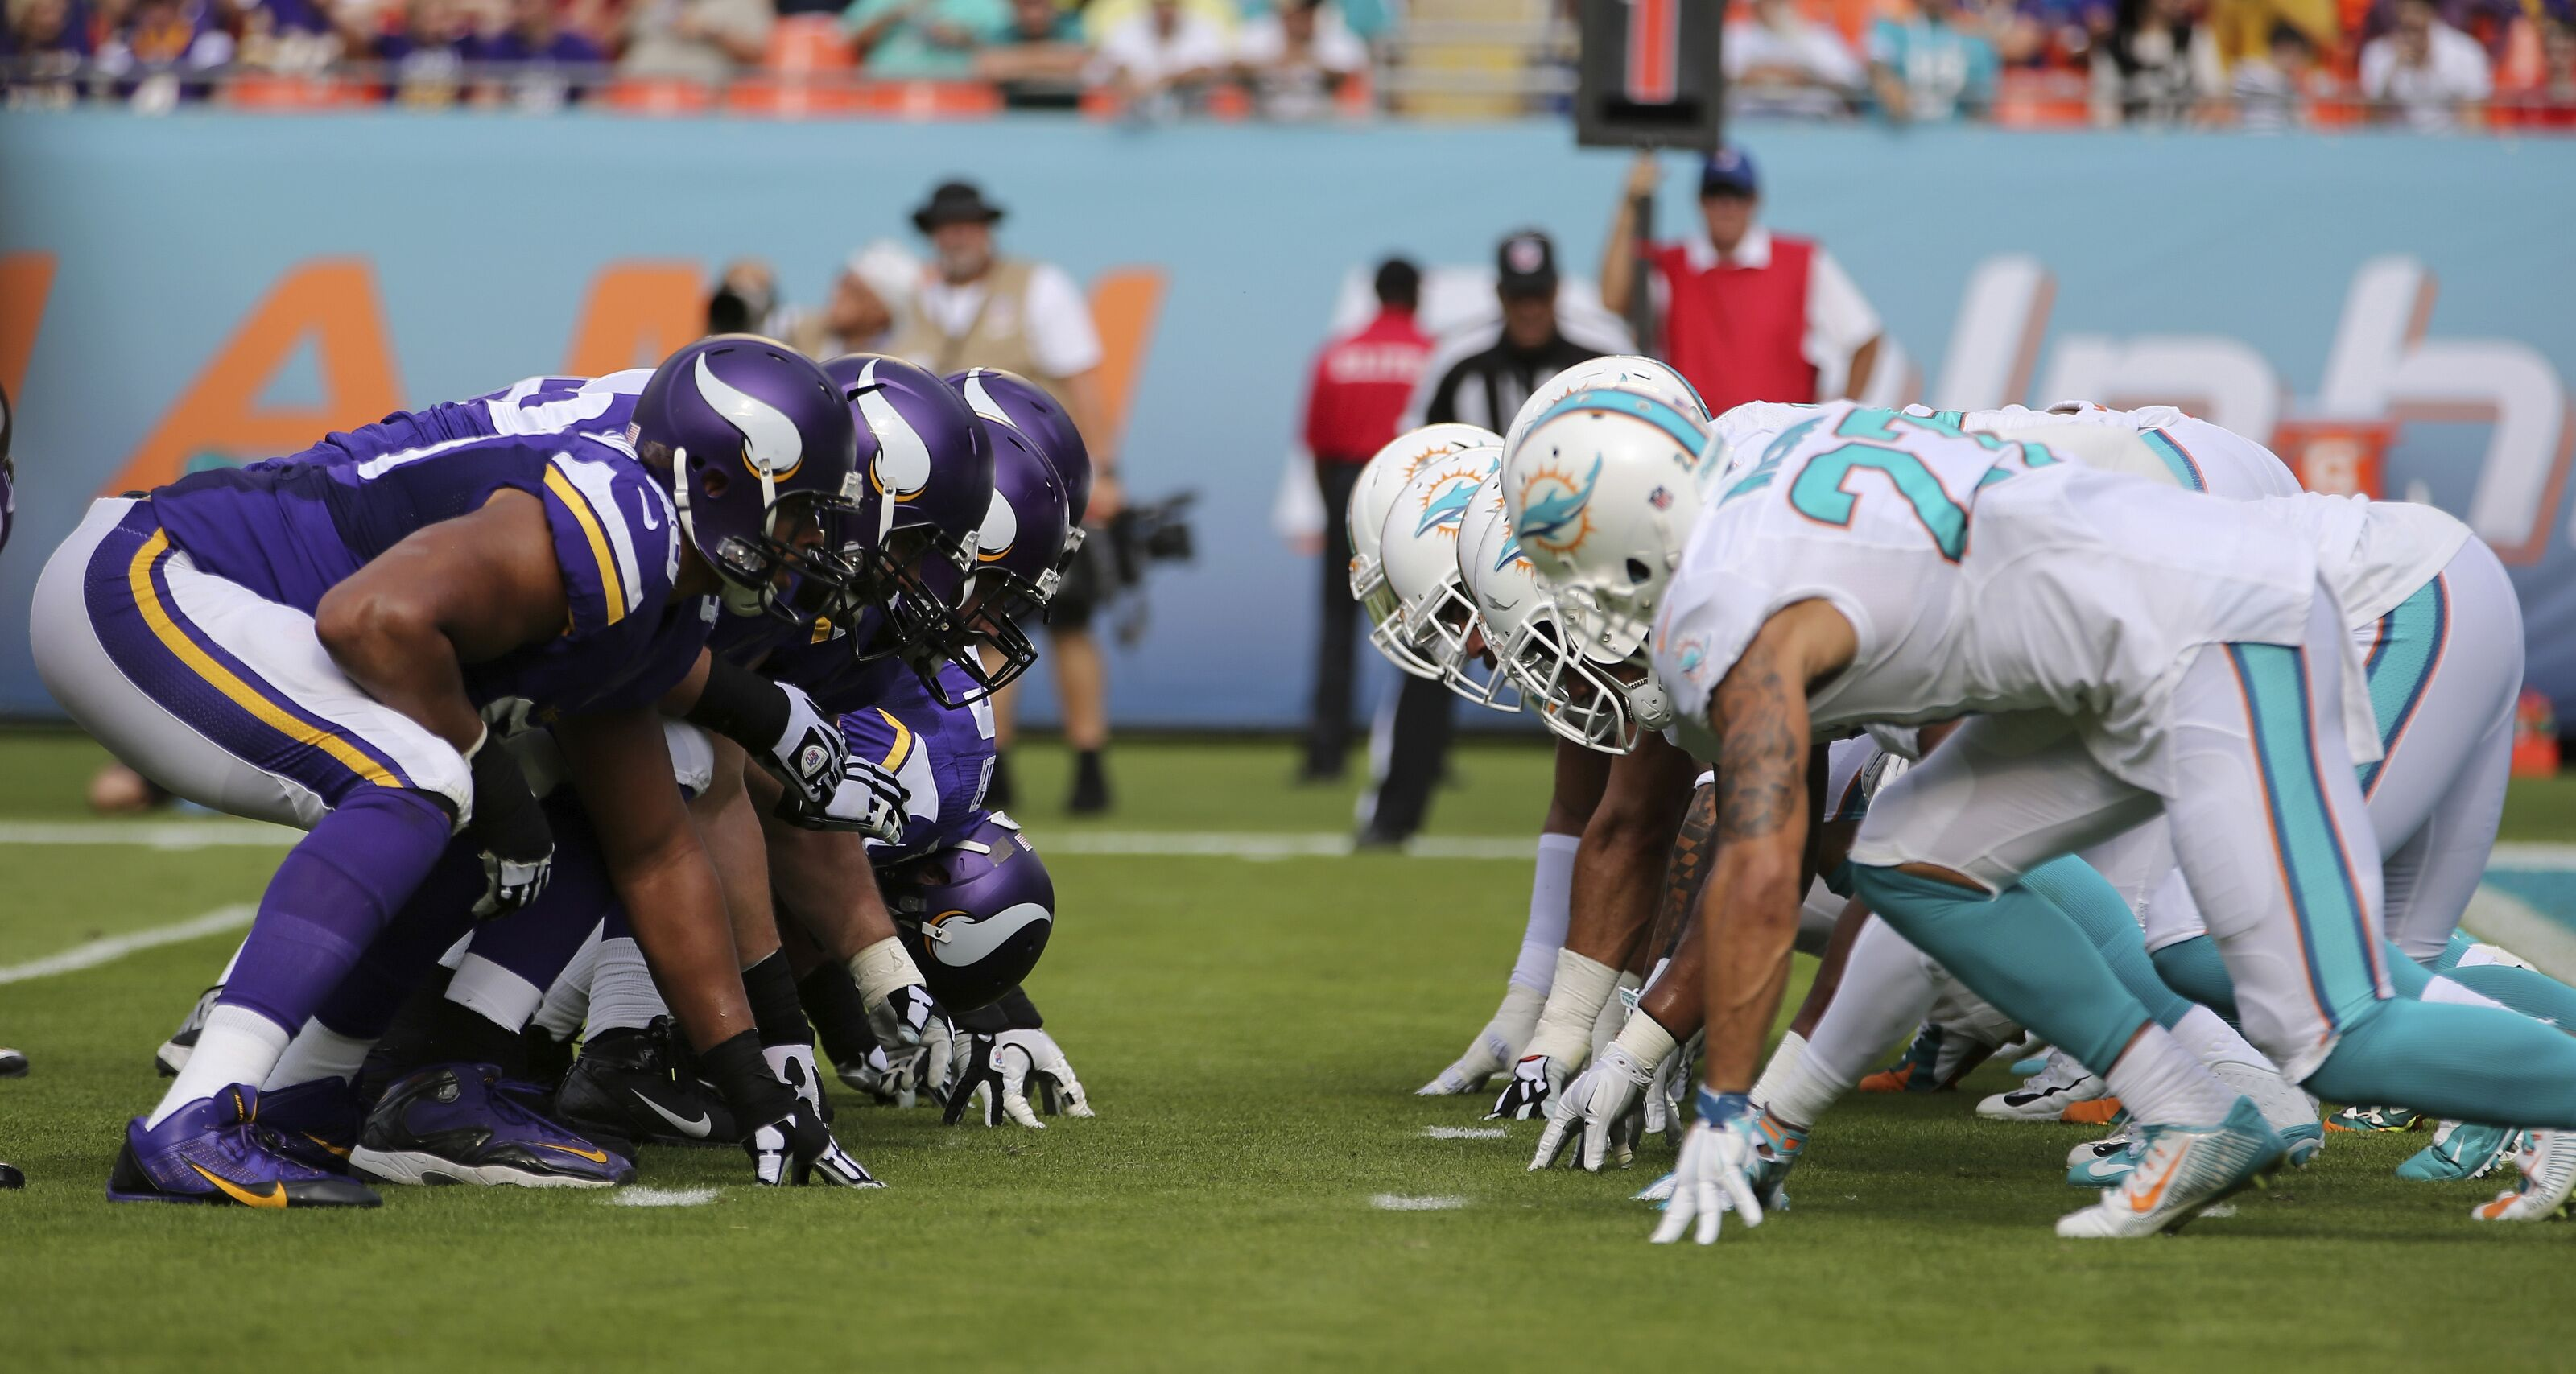 Miami Dolphins best draft plan should be starting on the line of scrimmage